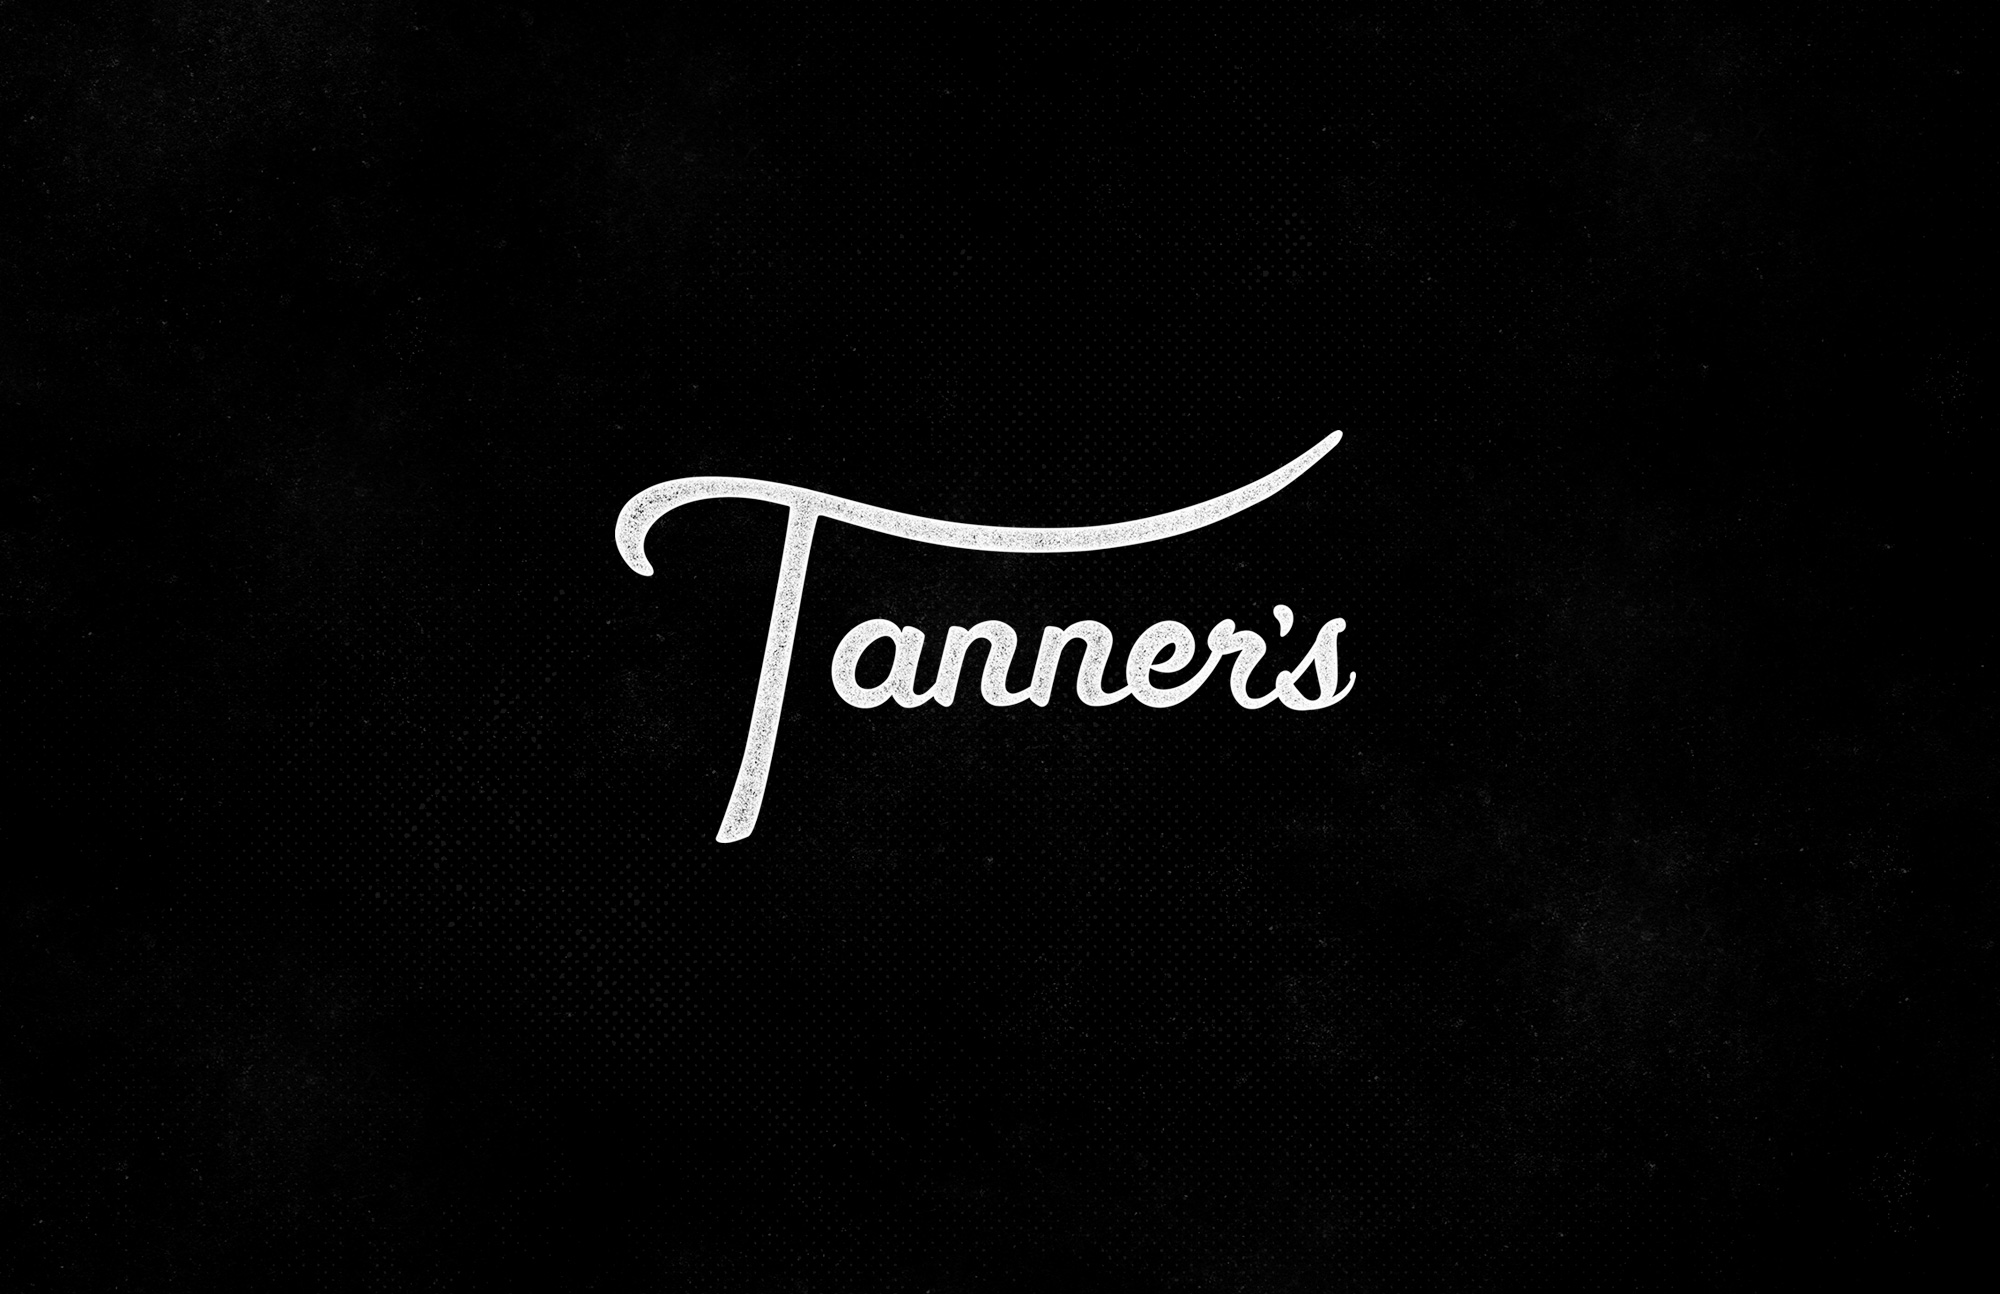 tanners-huntington-beach-2